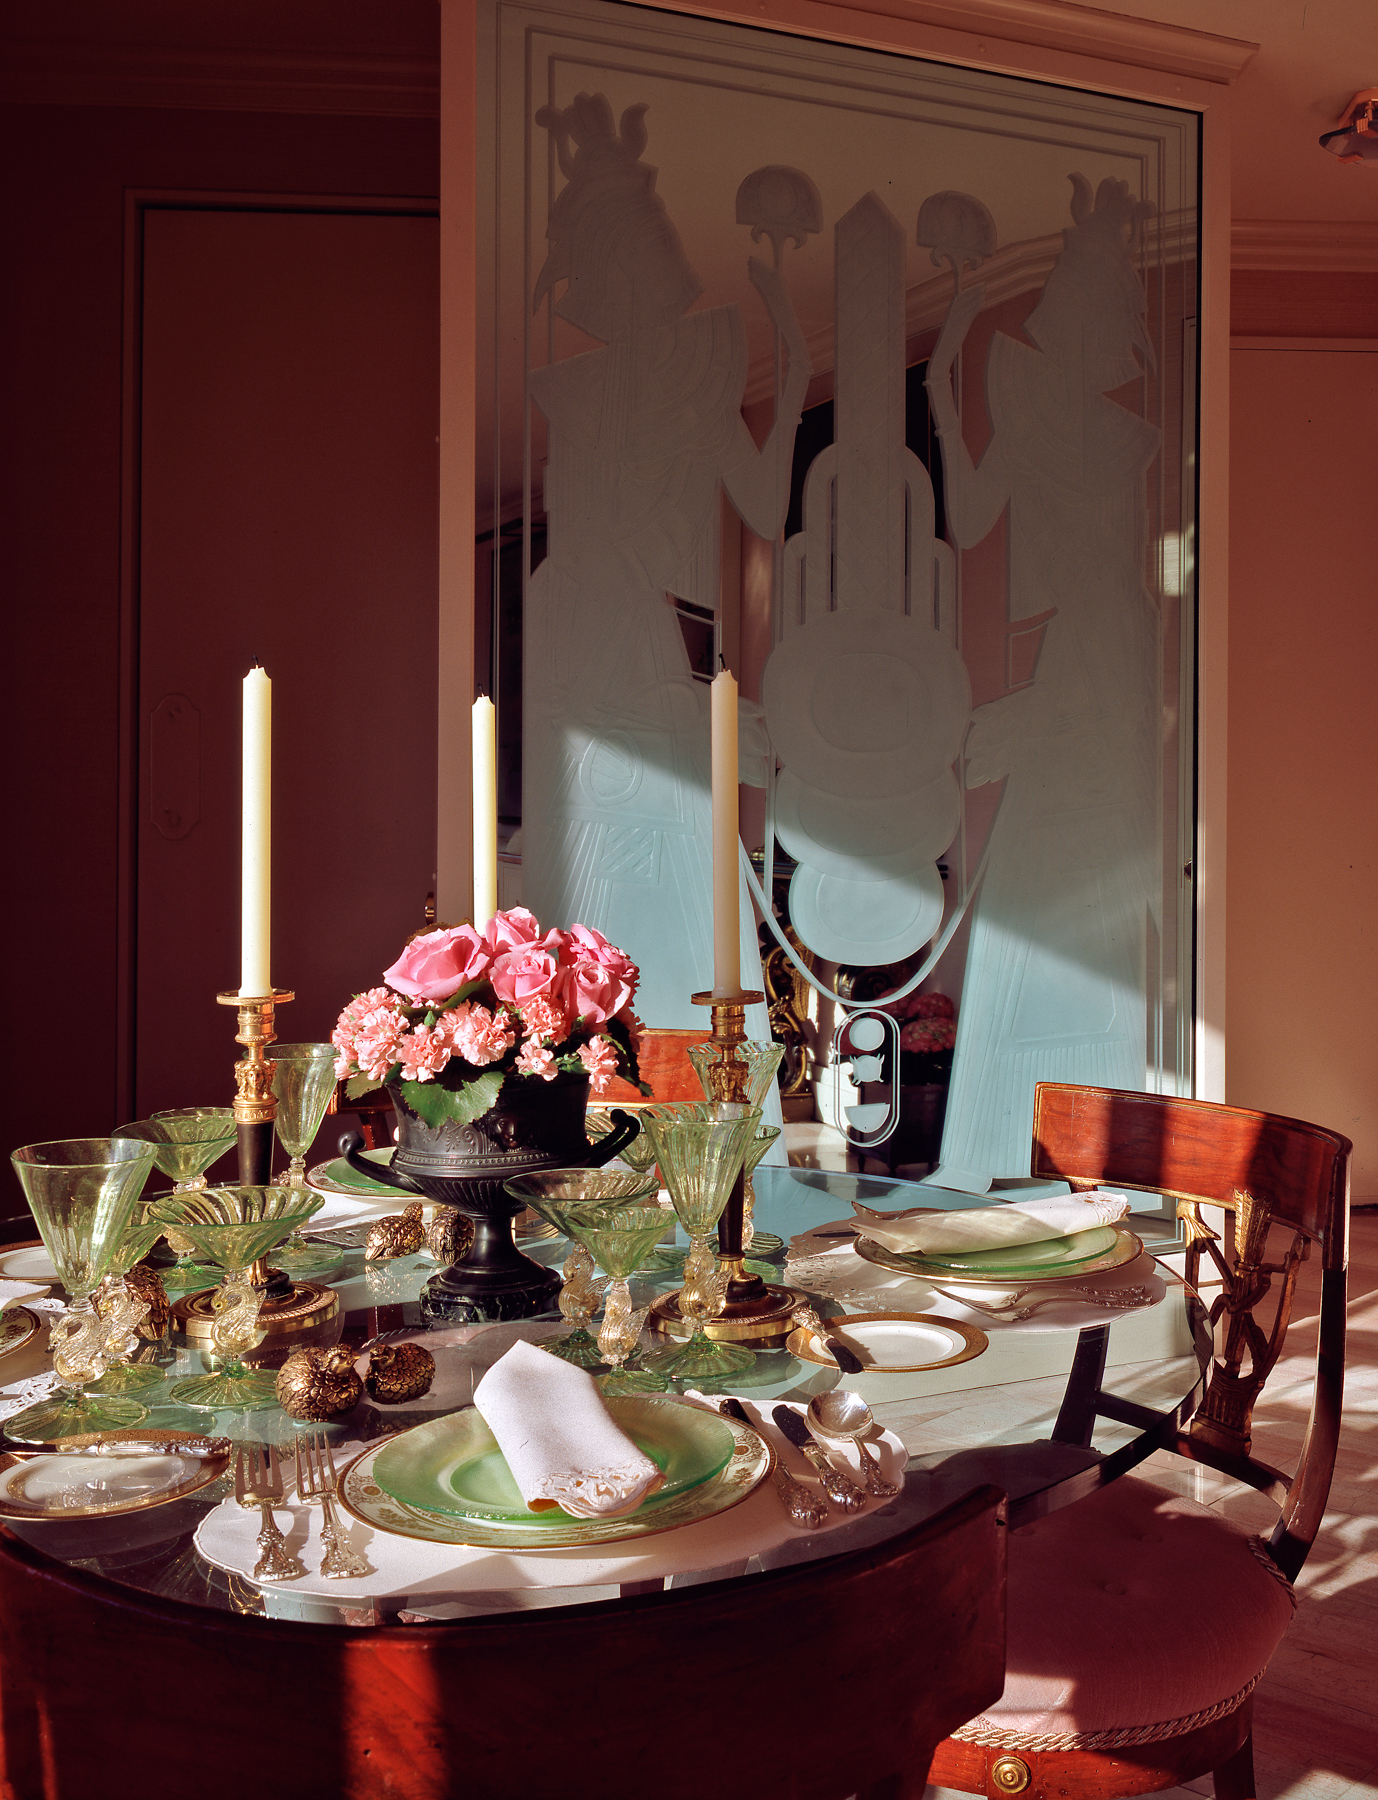 tableSetting copy.jpg